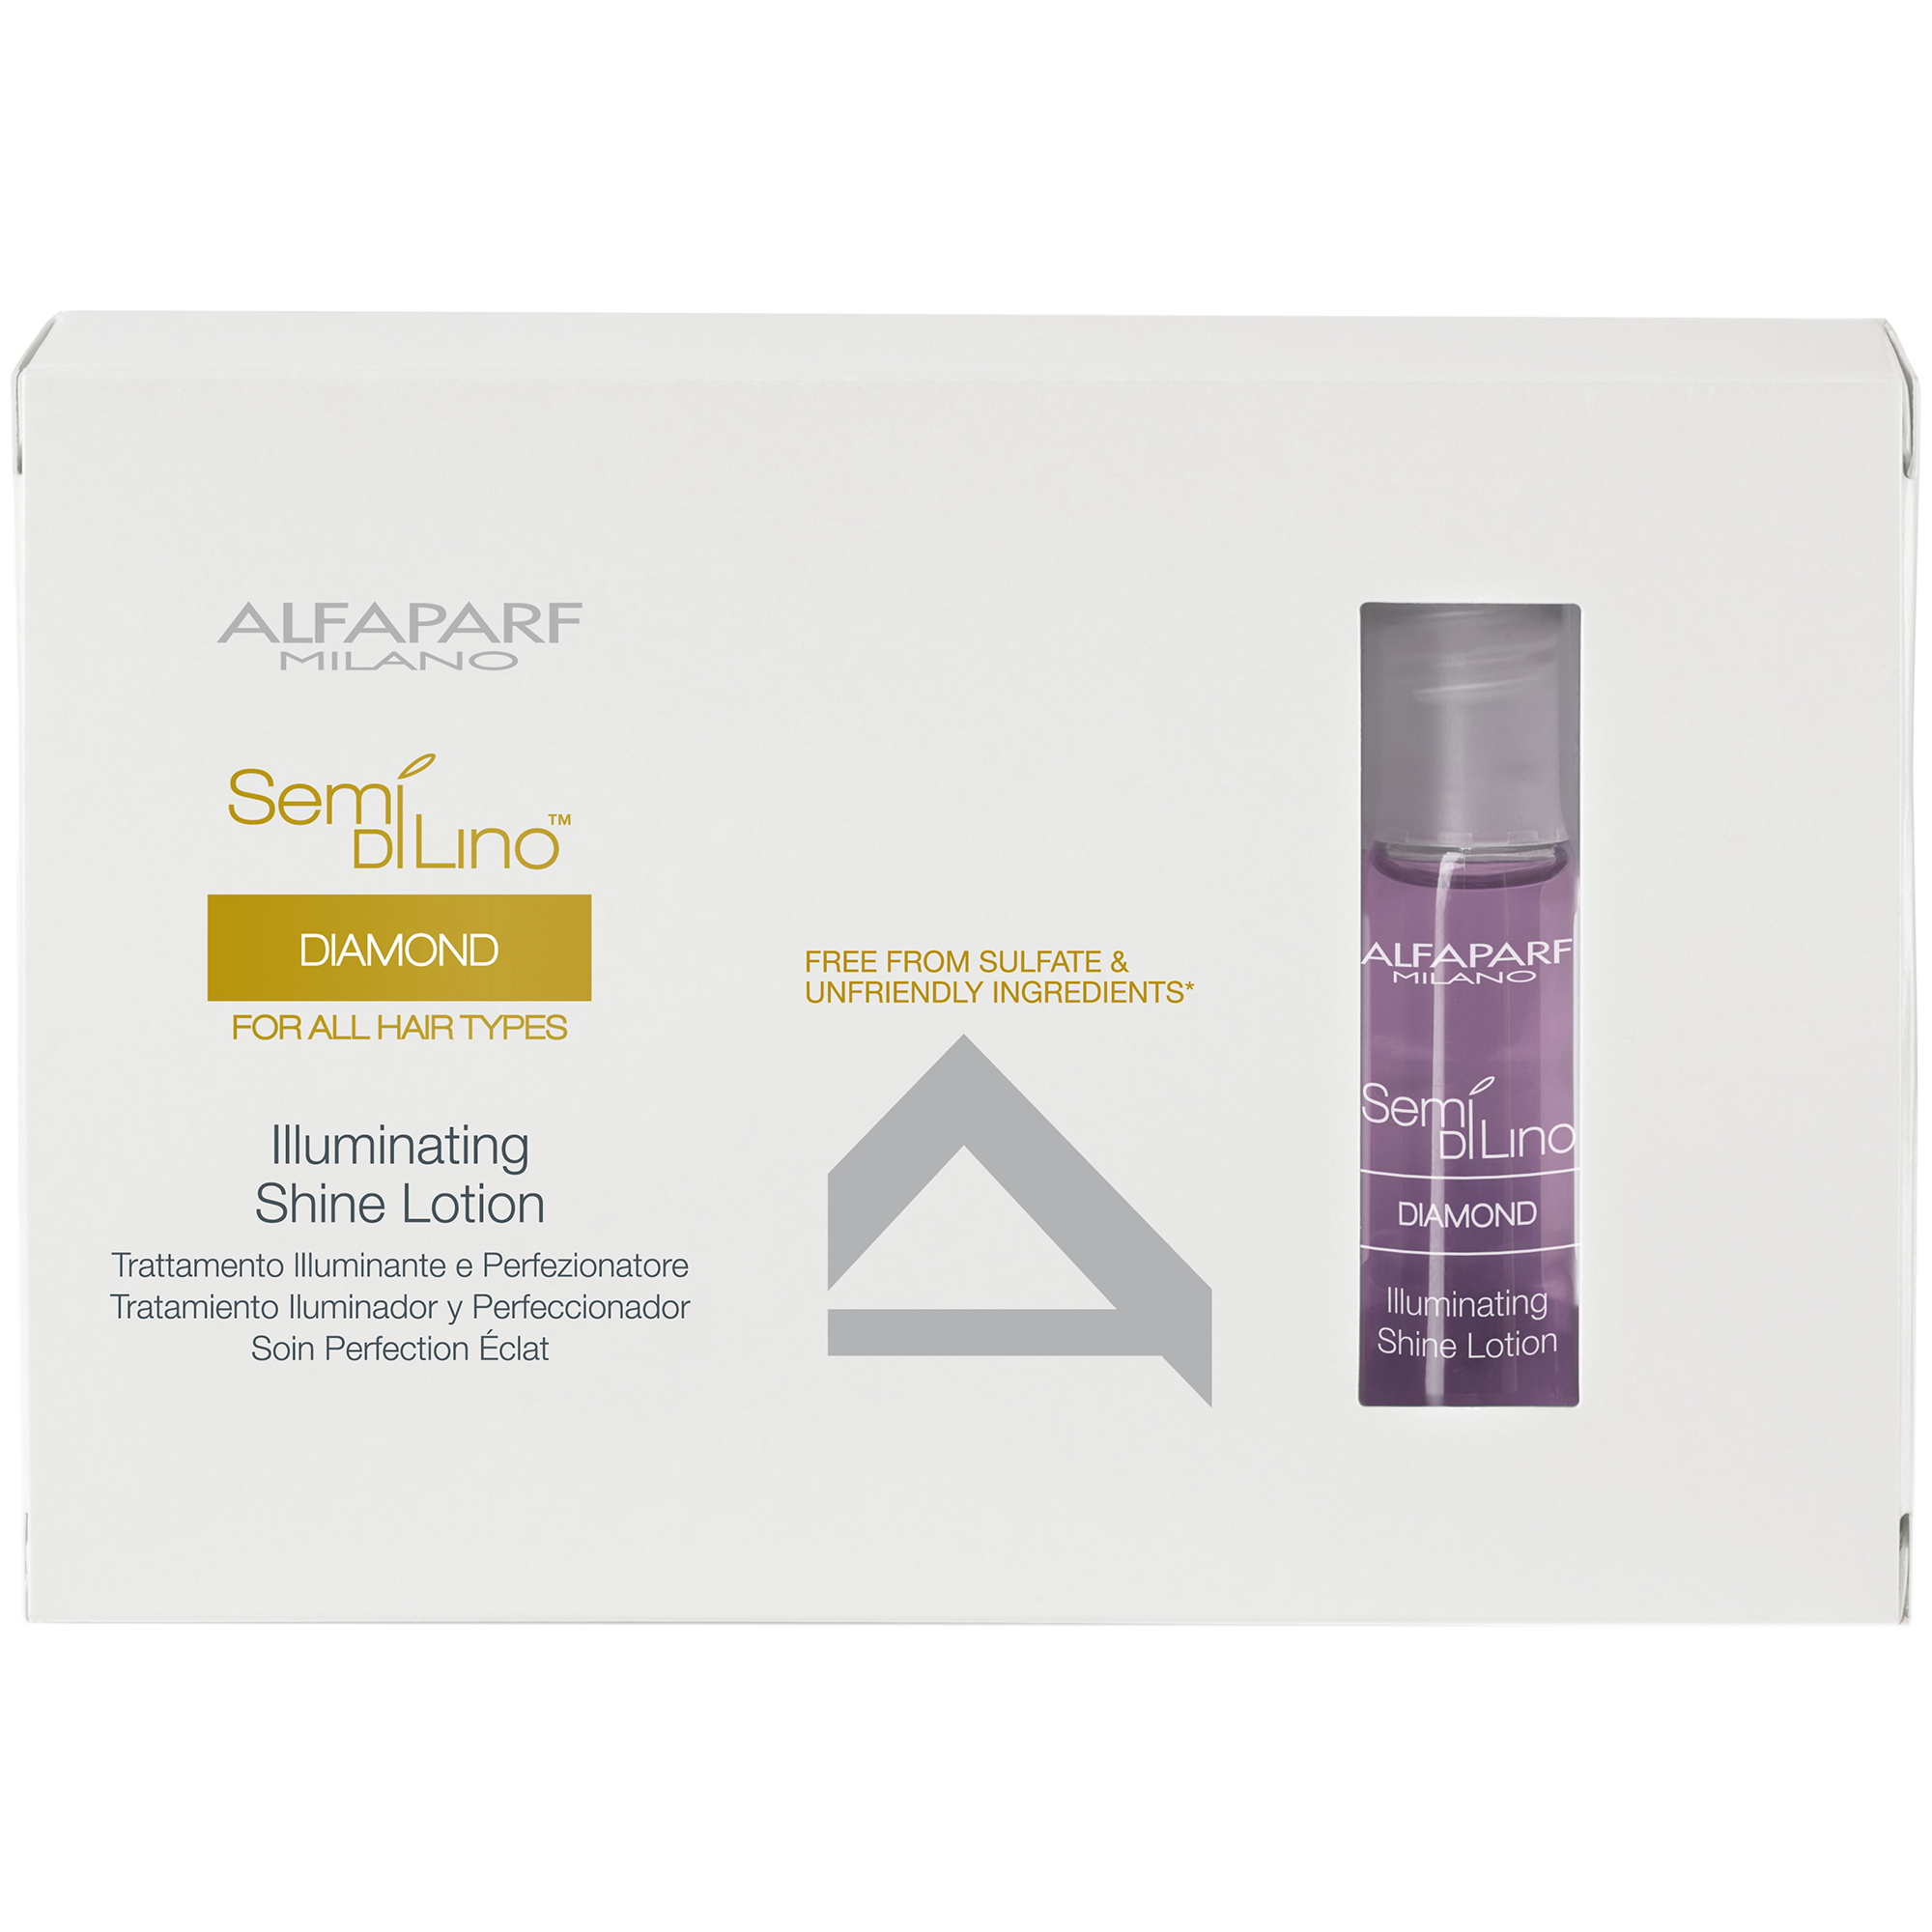 Alfaparf Semi Di Lino Diamond Illuminating Shine Lotion